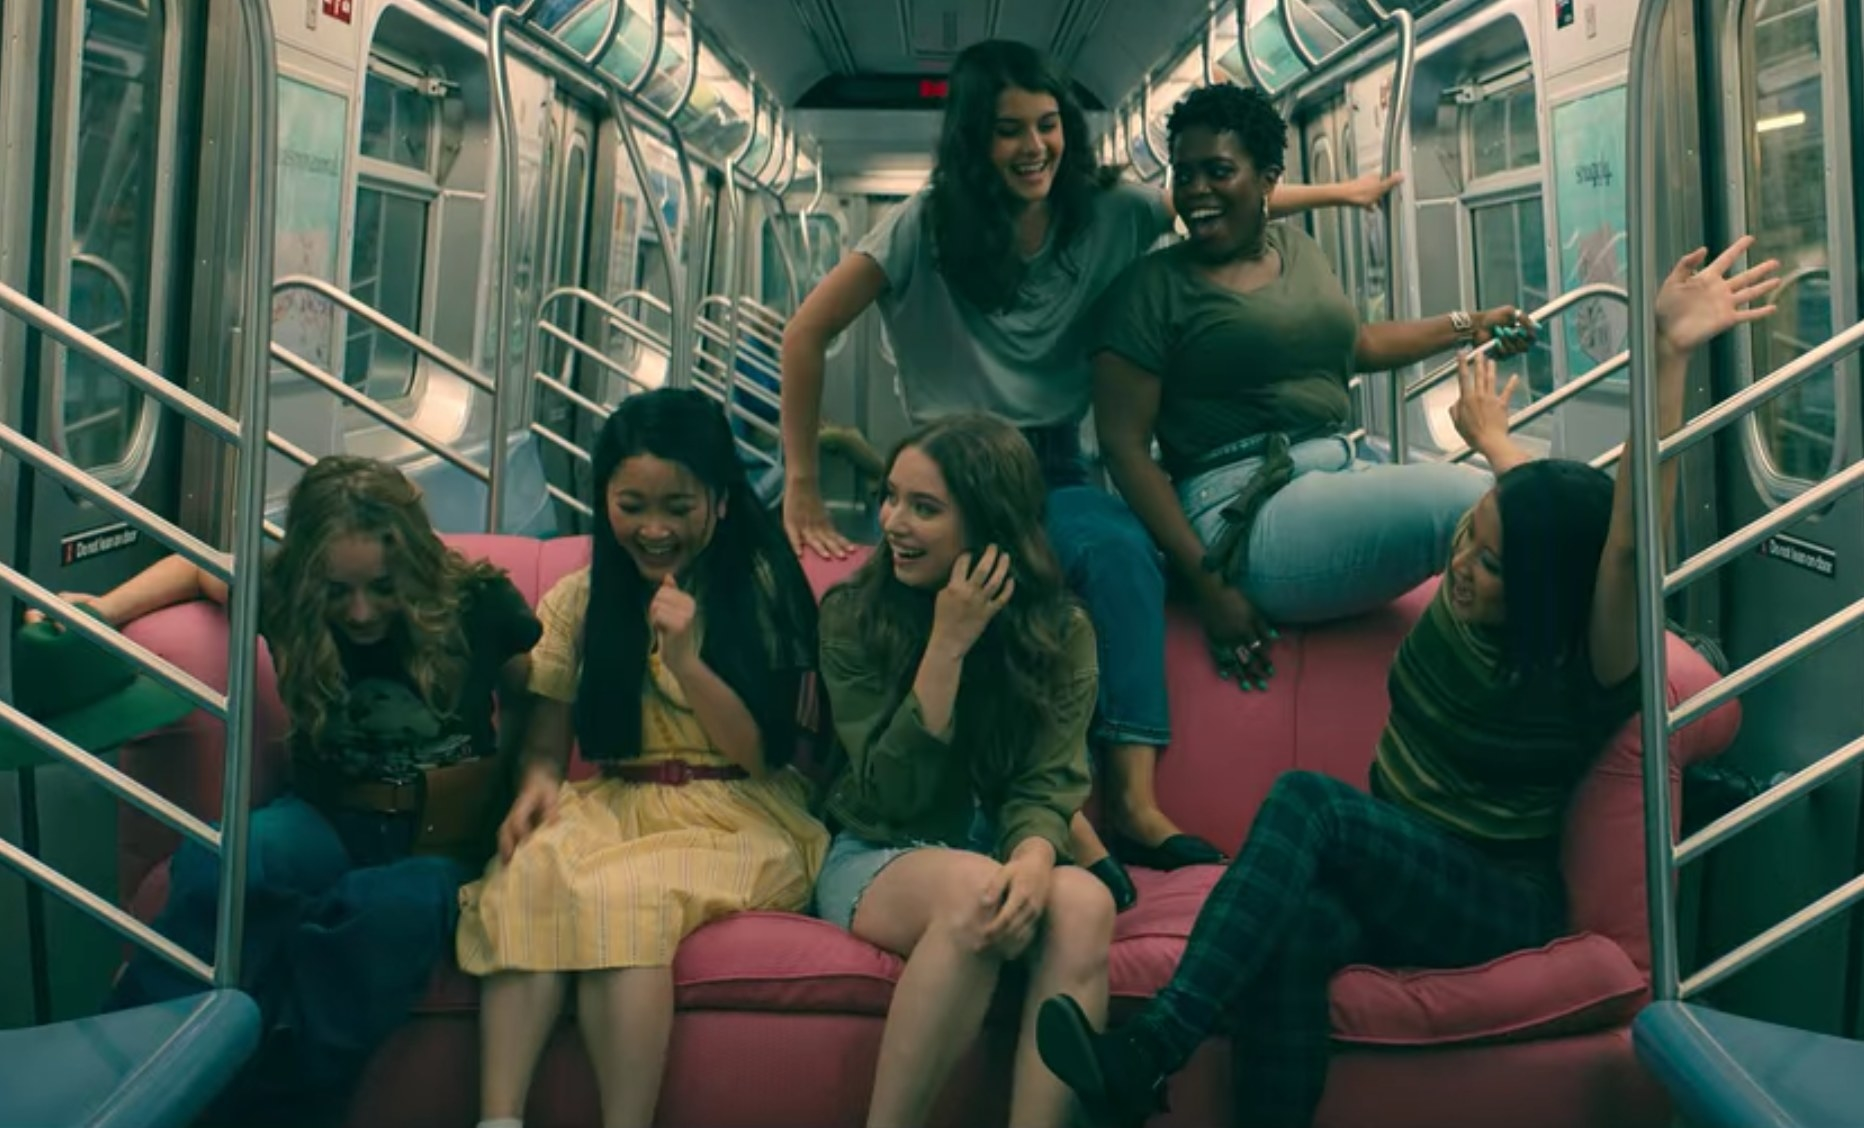 Lara Jean and friends sit on a couch inside of a subway train